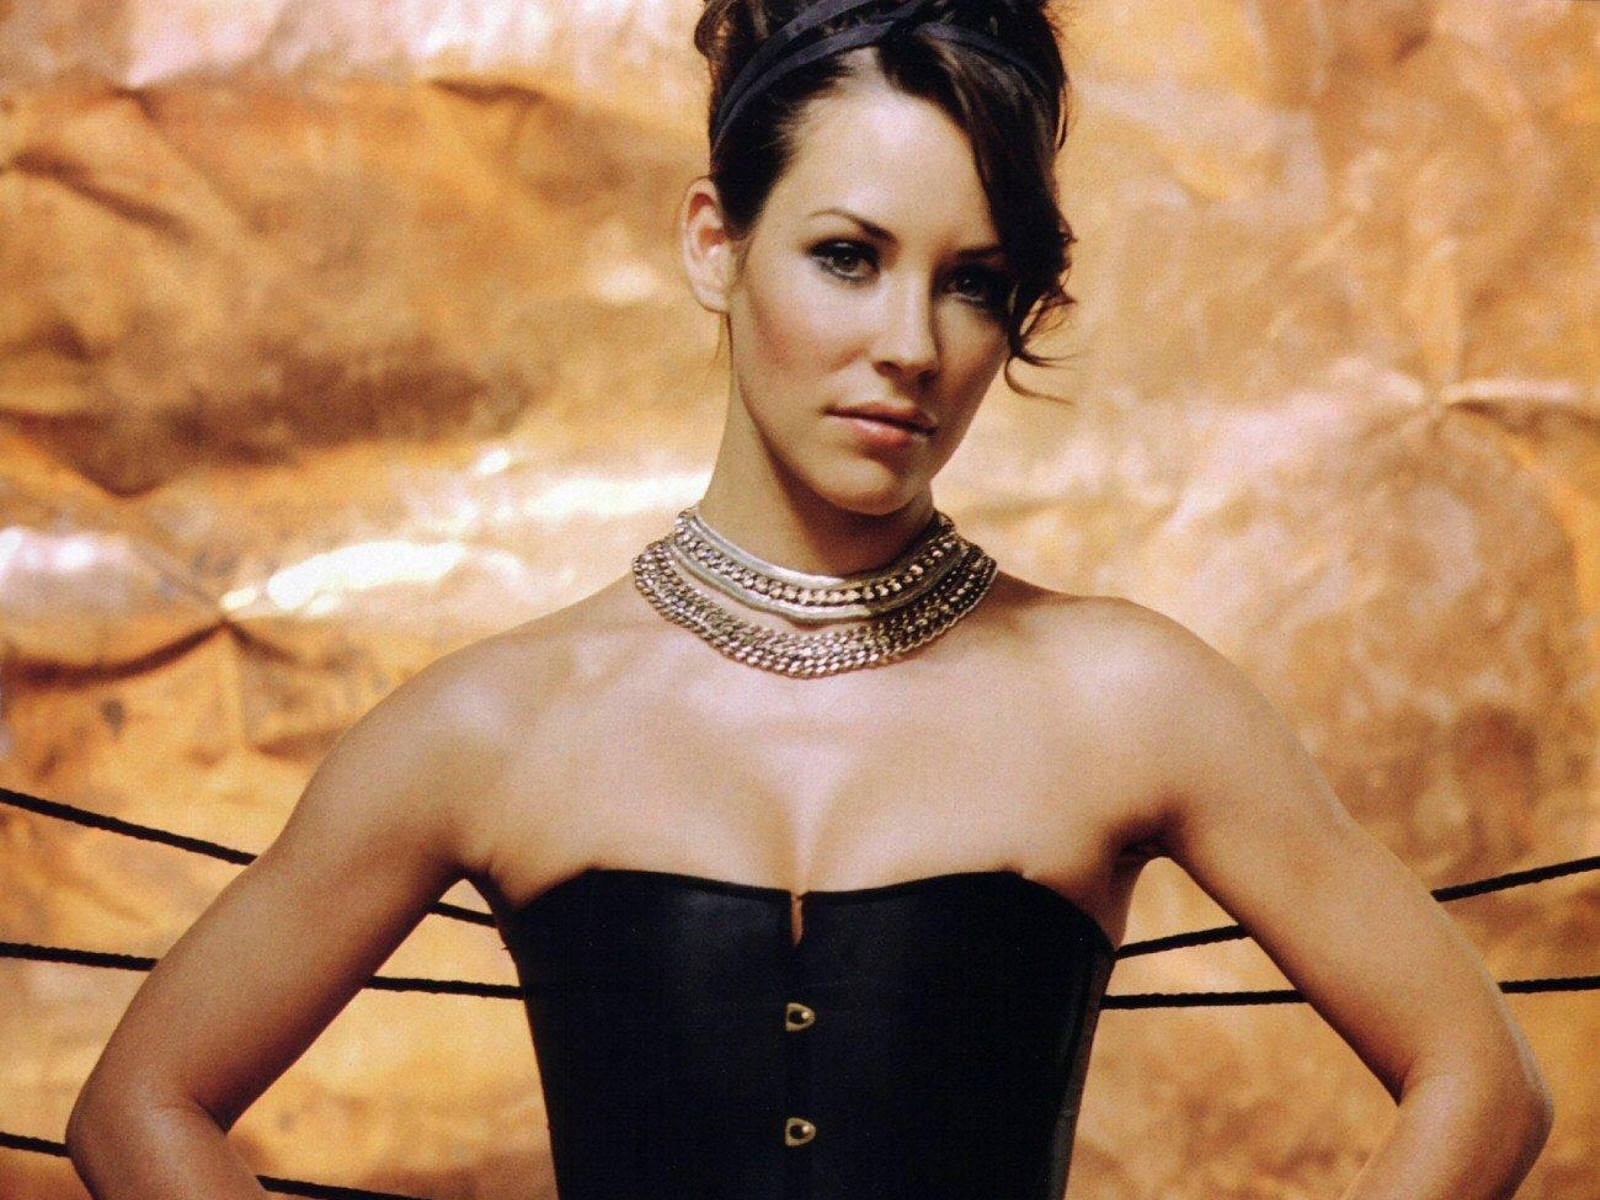 Wallpaper: la sexy Evangeline Lilly